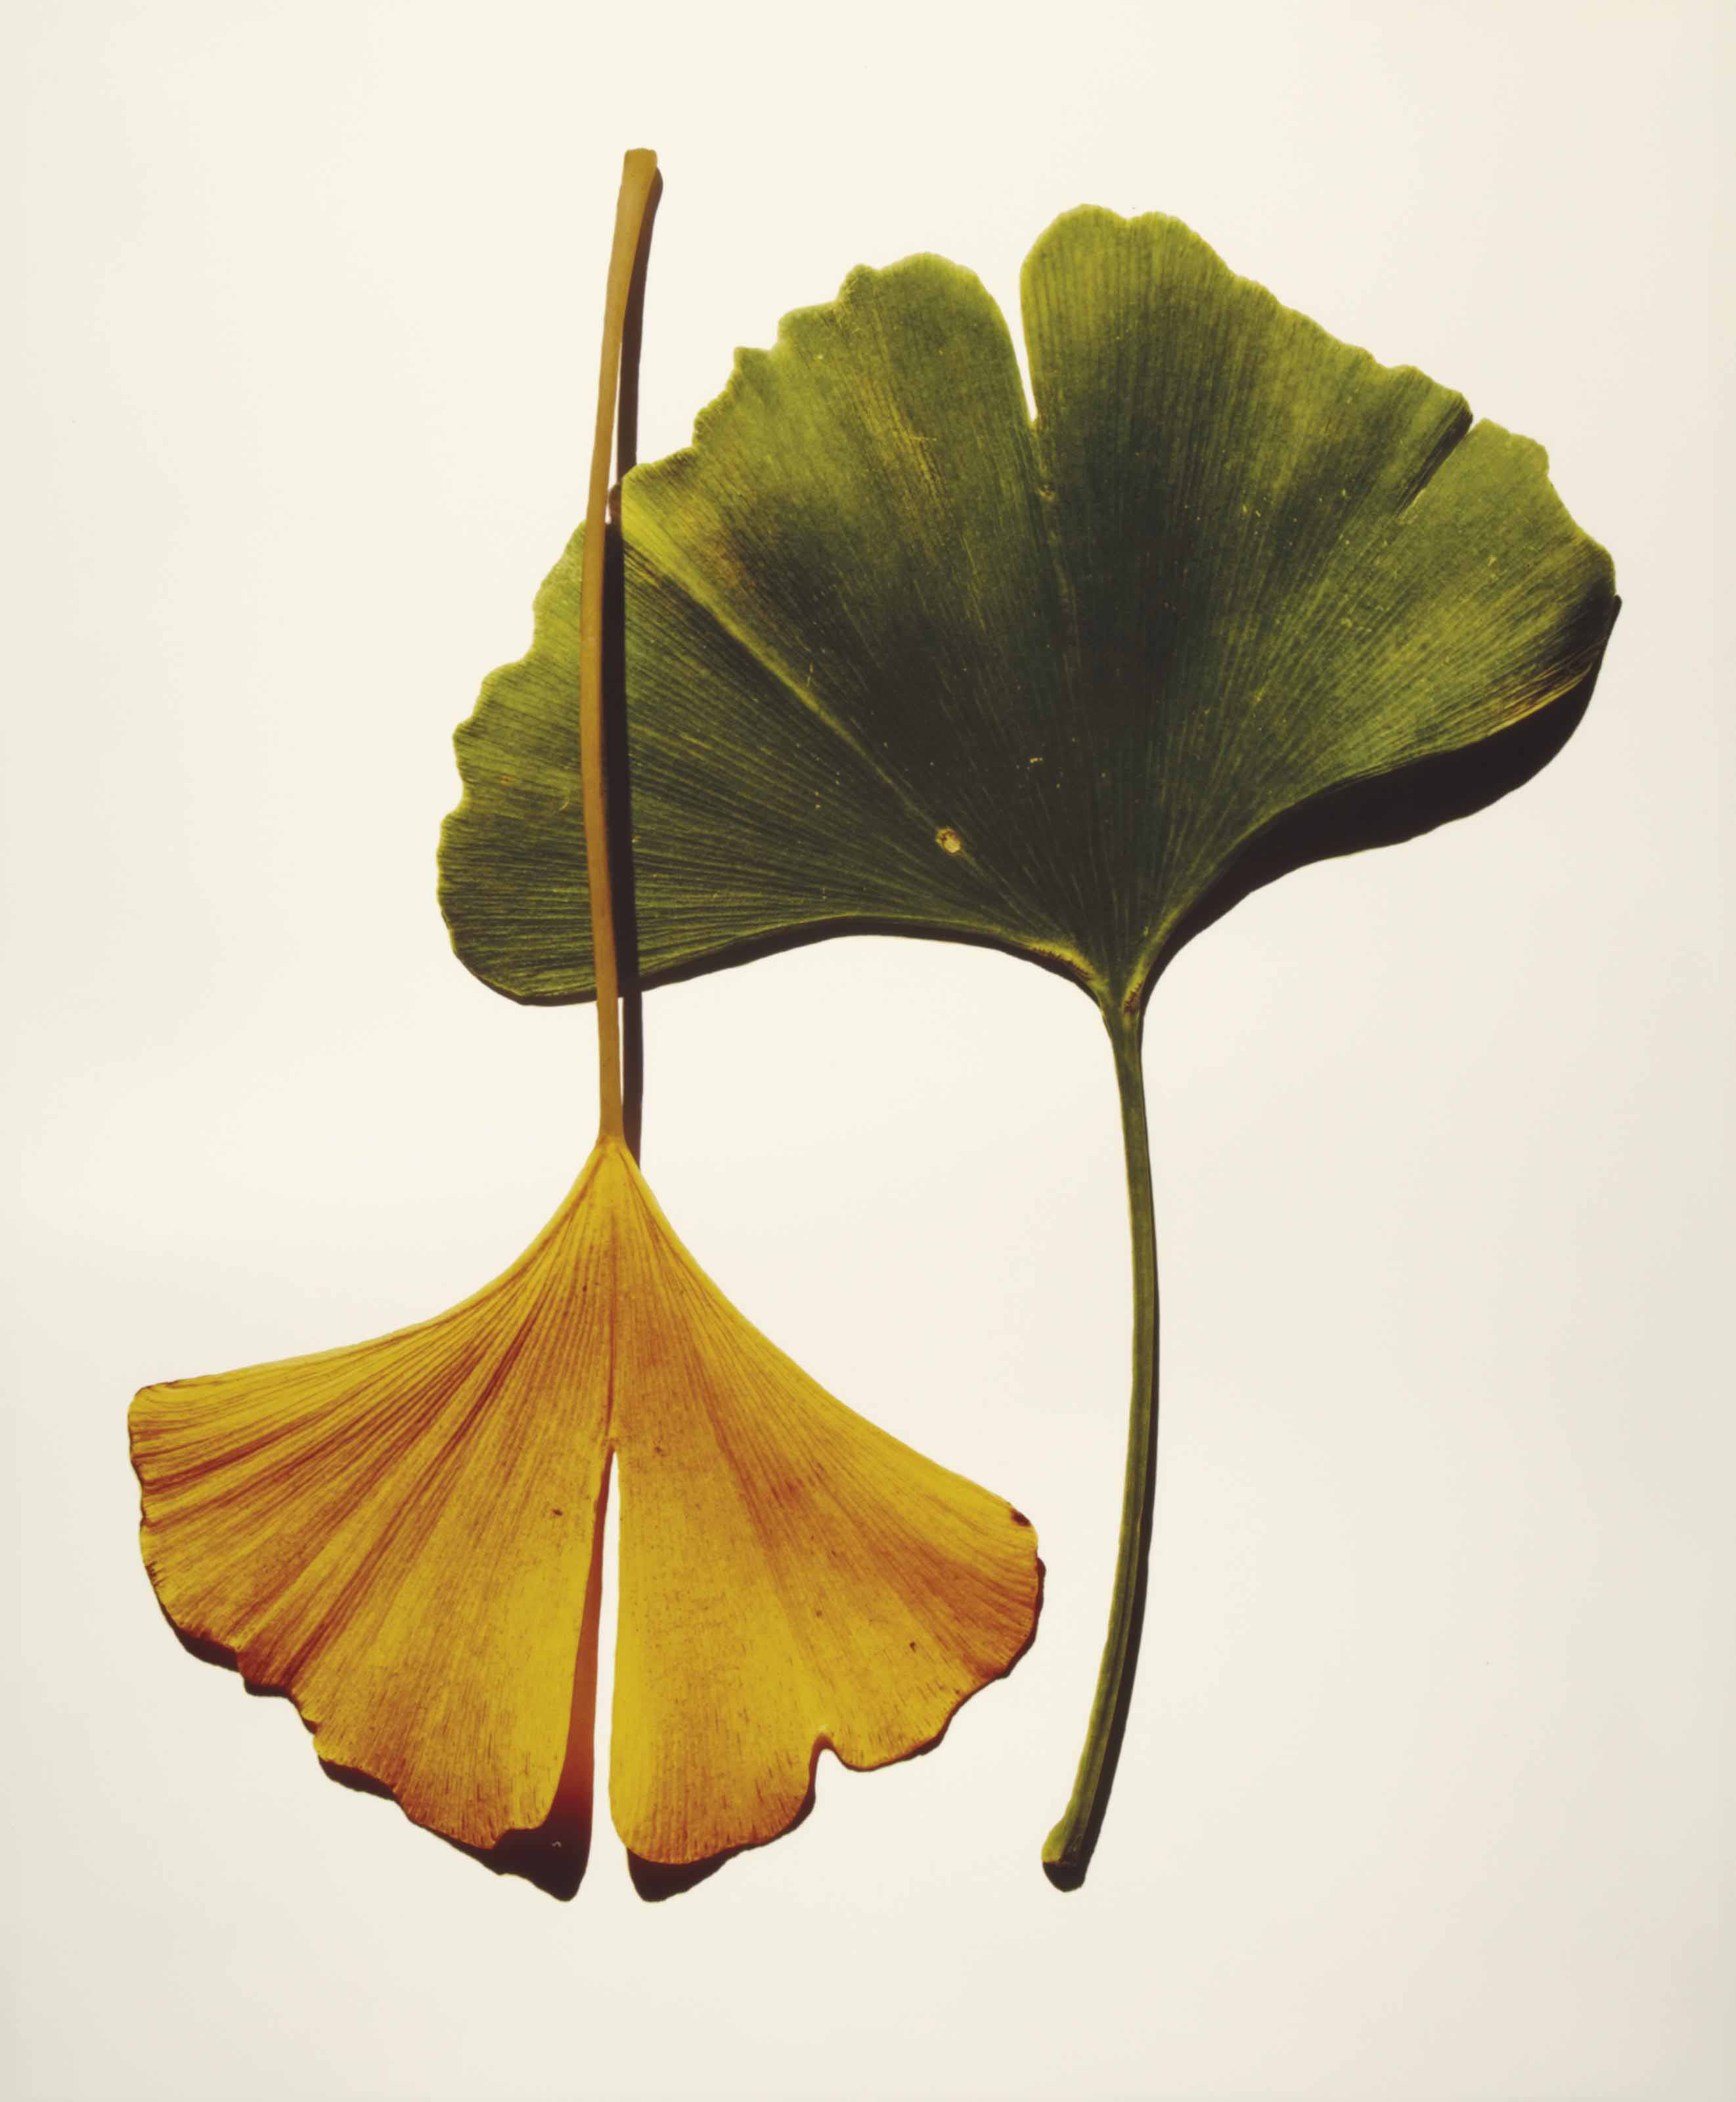 Gingko Leaves, New York, 1990